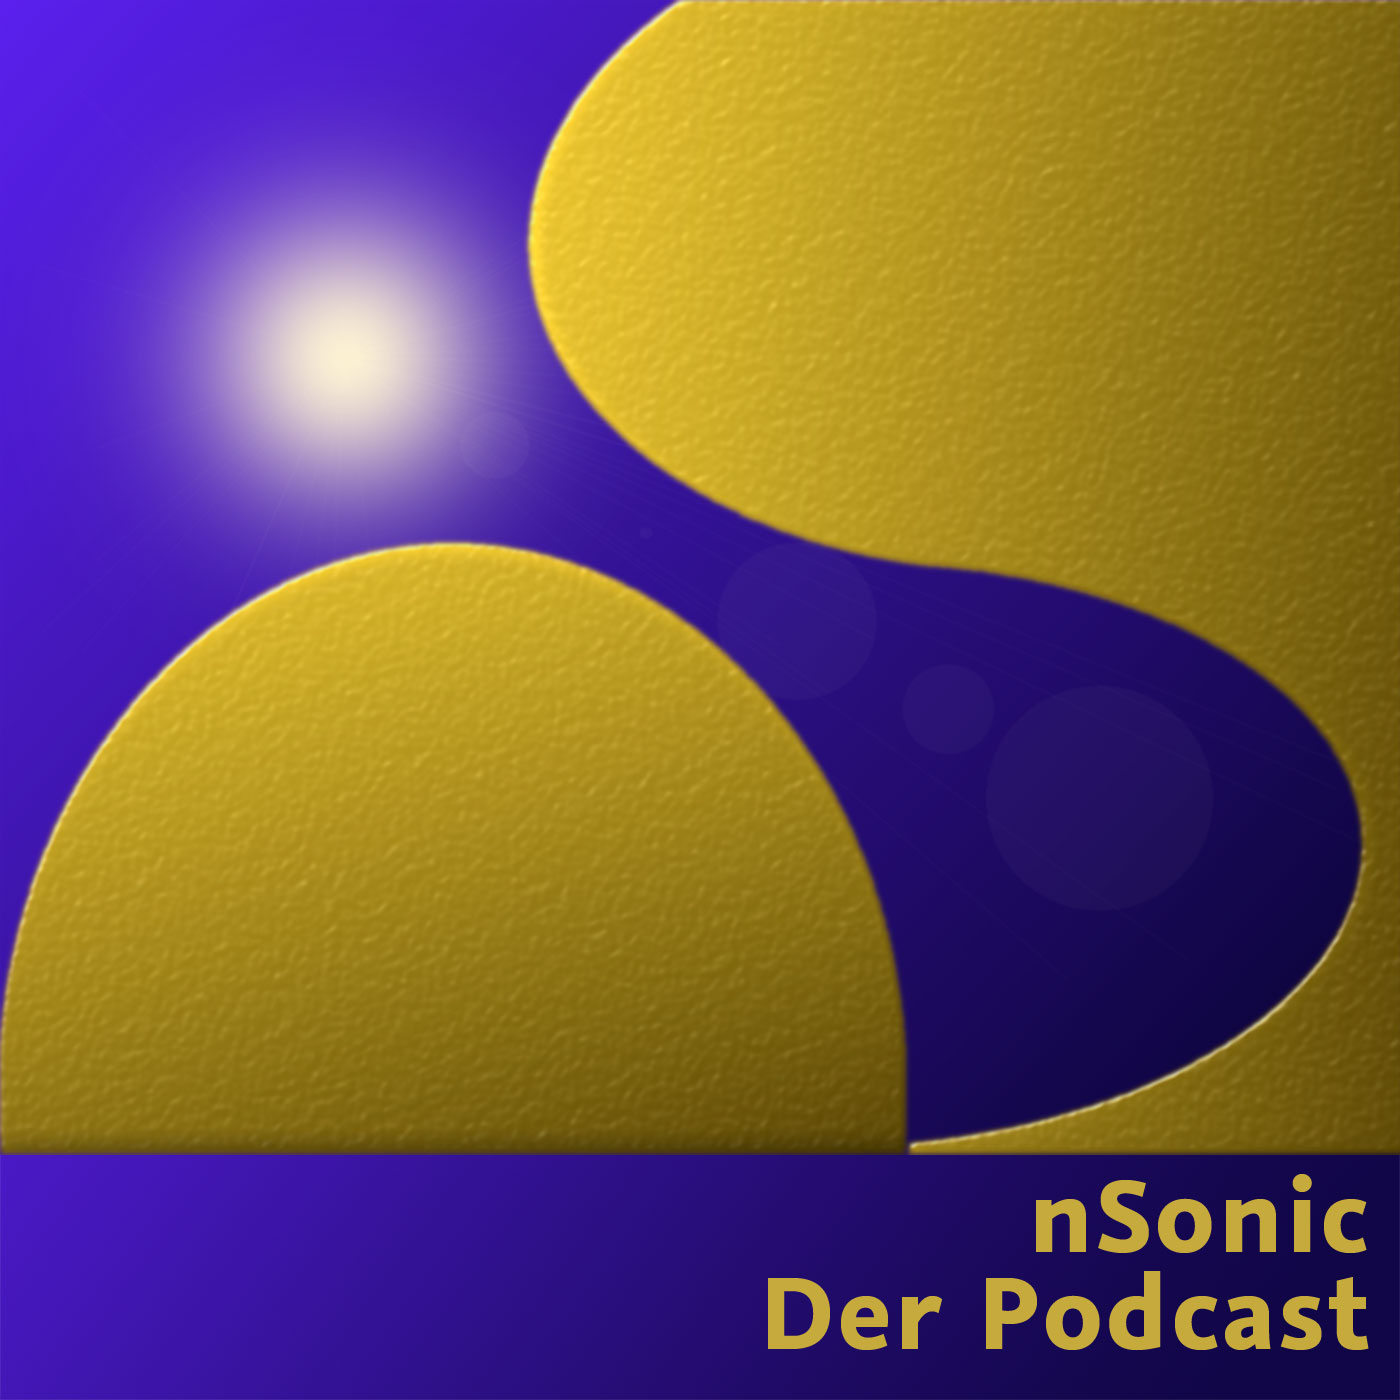 Podcast: nSonic – Der Podcast – nSonic Homepage